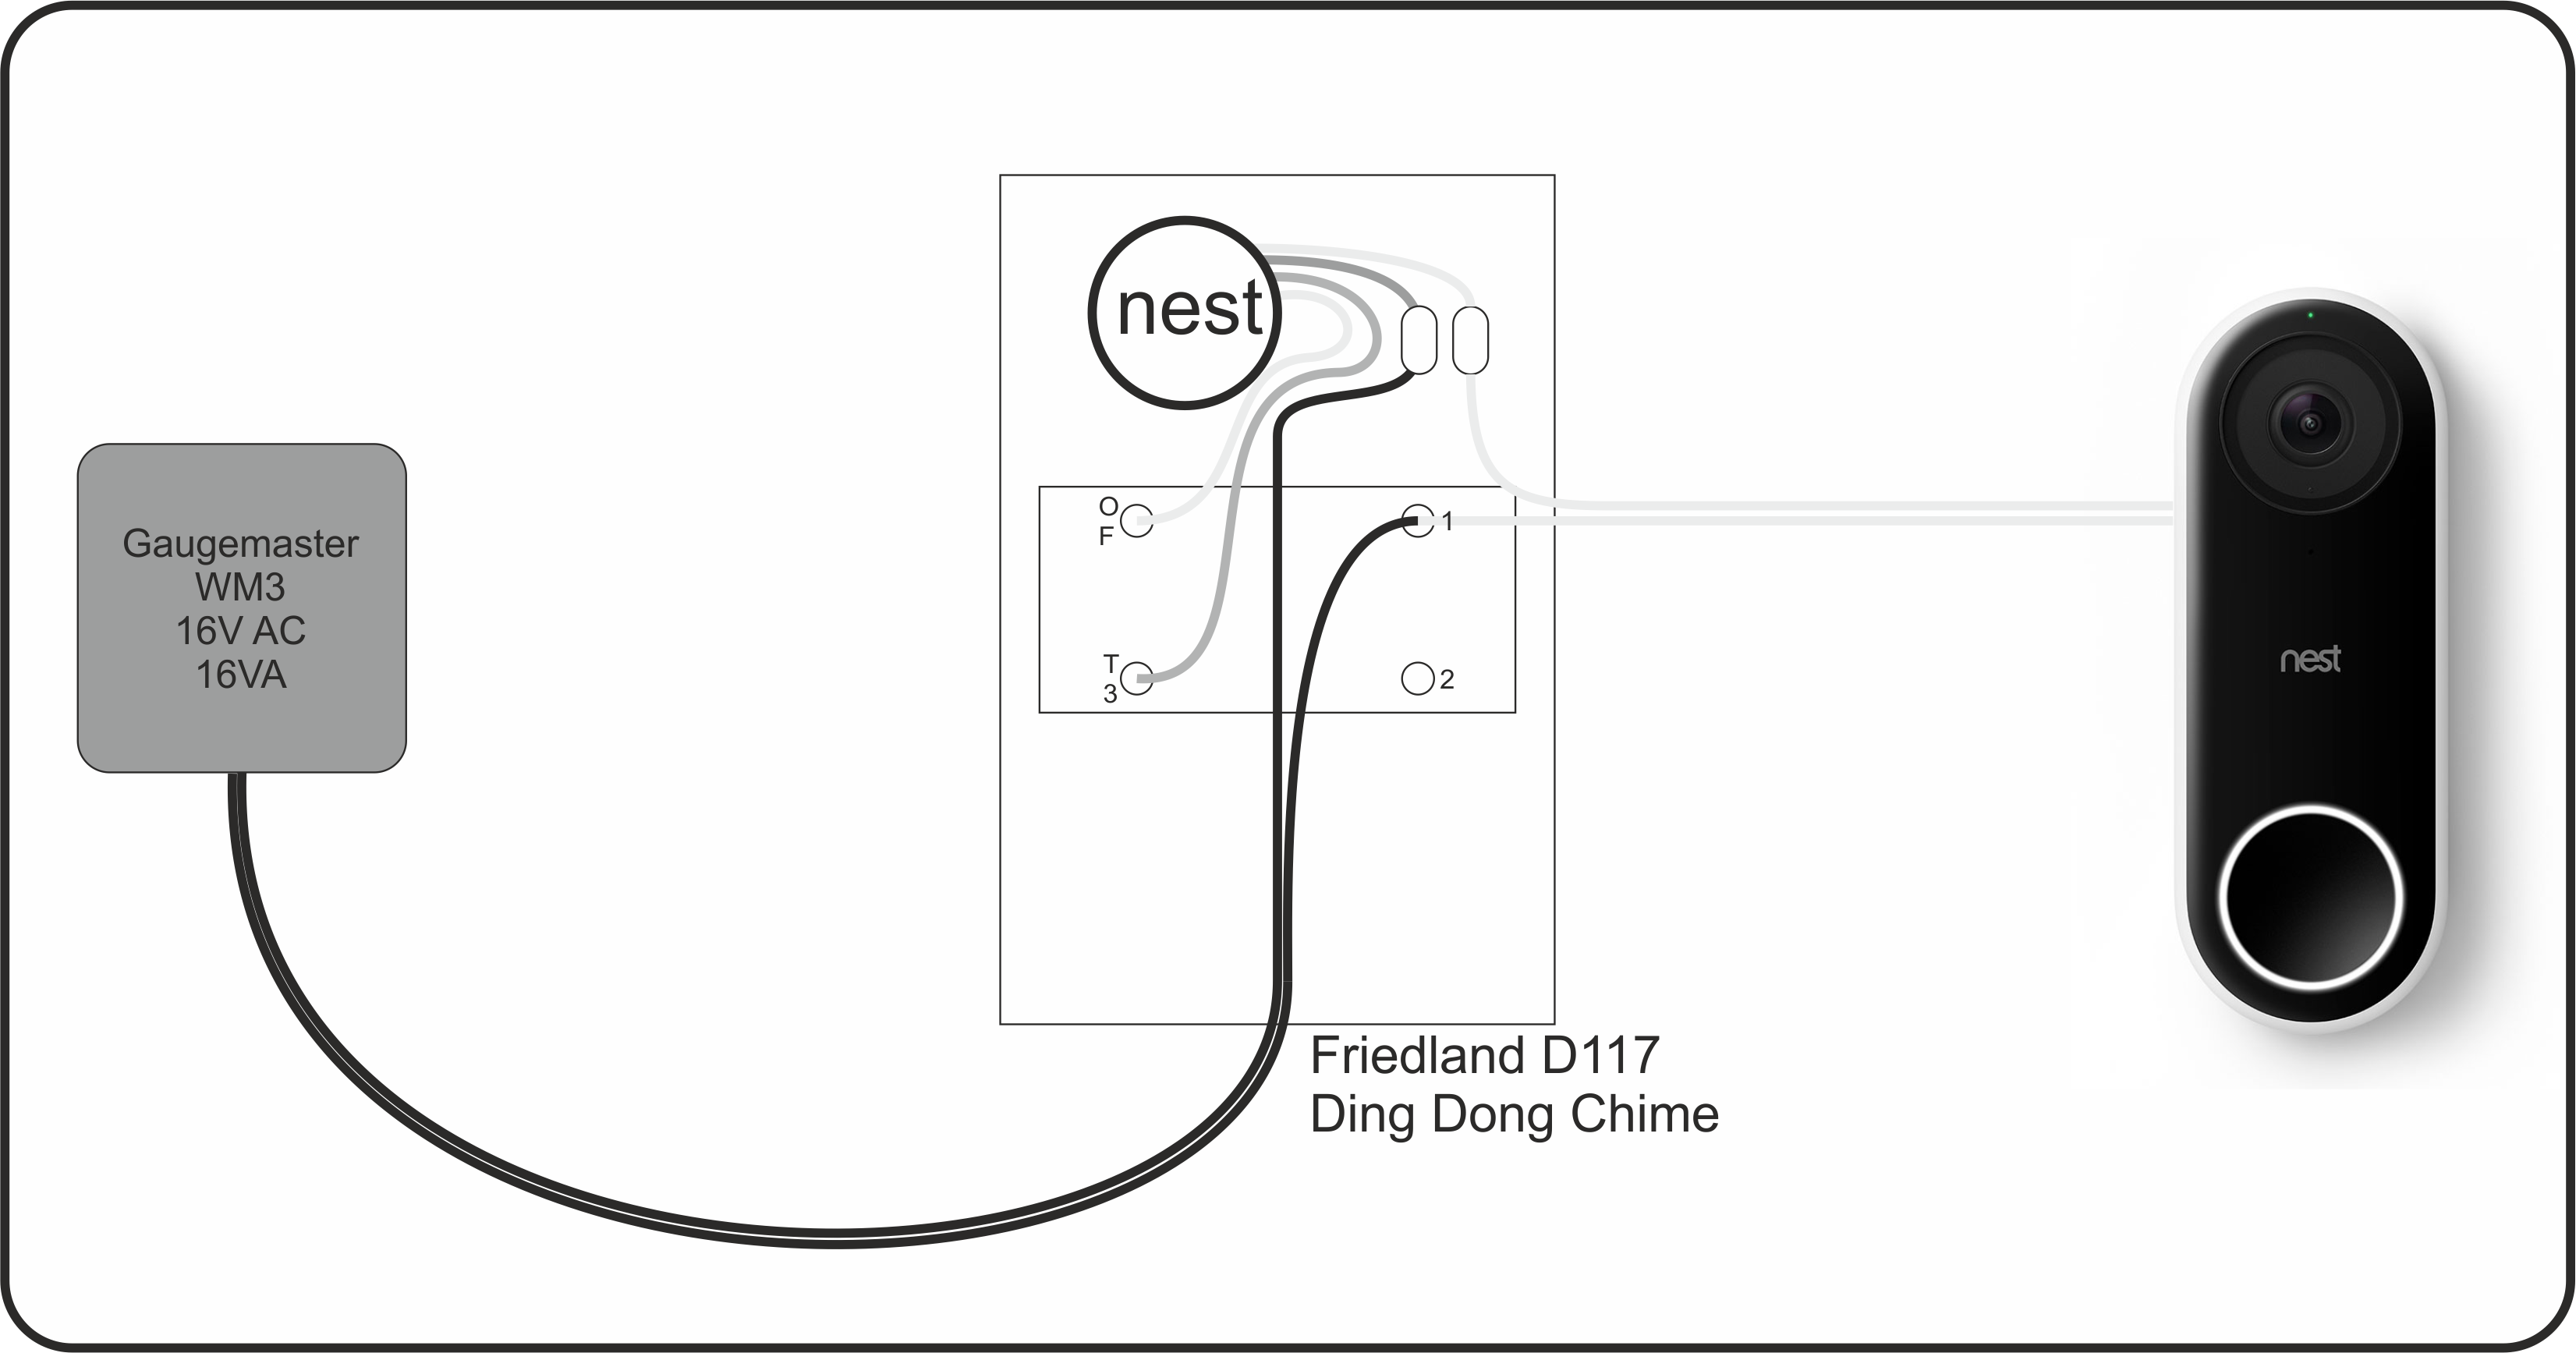 Nest o Without Chime nest chime connector nest o ... Nest Doorbell Wiring Guide on doorbell installation, doorbell wiring design, doorbell sound,